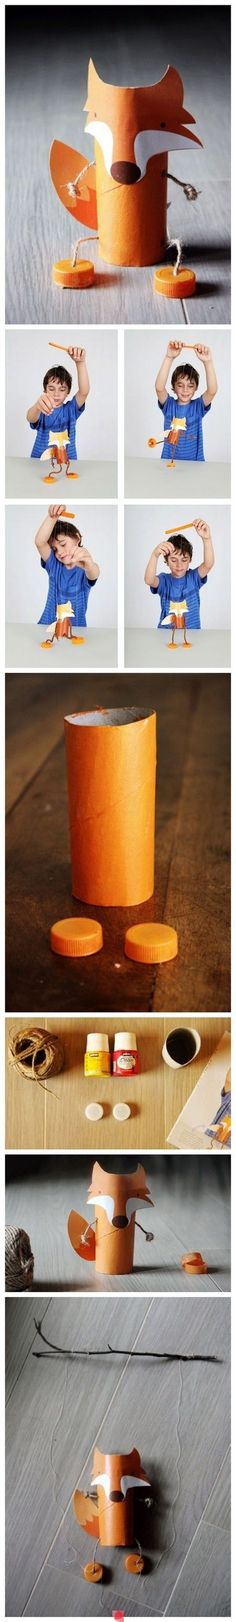 Toilet Paper Roll Crafts - Get creative! These toilet paper roll crafts are a great way to reuse these often forgotten paper products. You can use toilet paper rolls for anything! creative DIY toilet paper roll crafts are fun and easy to make. Projects For Kids, Diy For Kids, Crafts For Kids, Arts And Crafts, Summer Crafts, Toilet Paper Roll Crafts, Toilet Paper Rolls, Crafty Kids, Crafty Fox